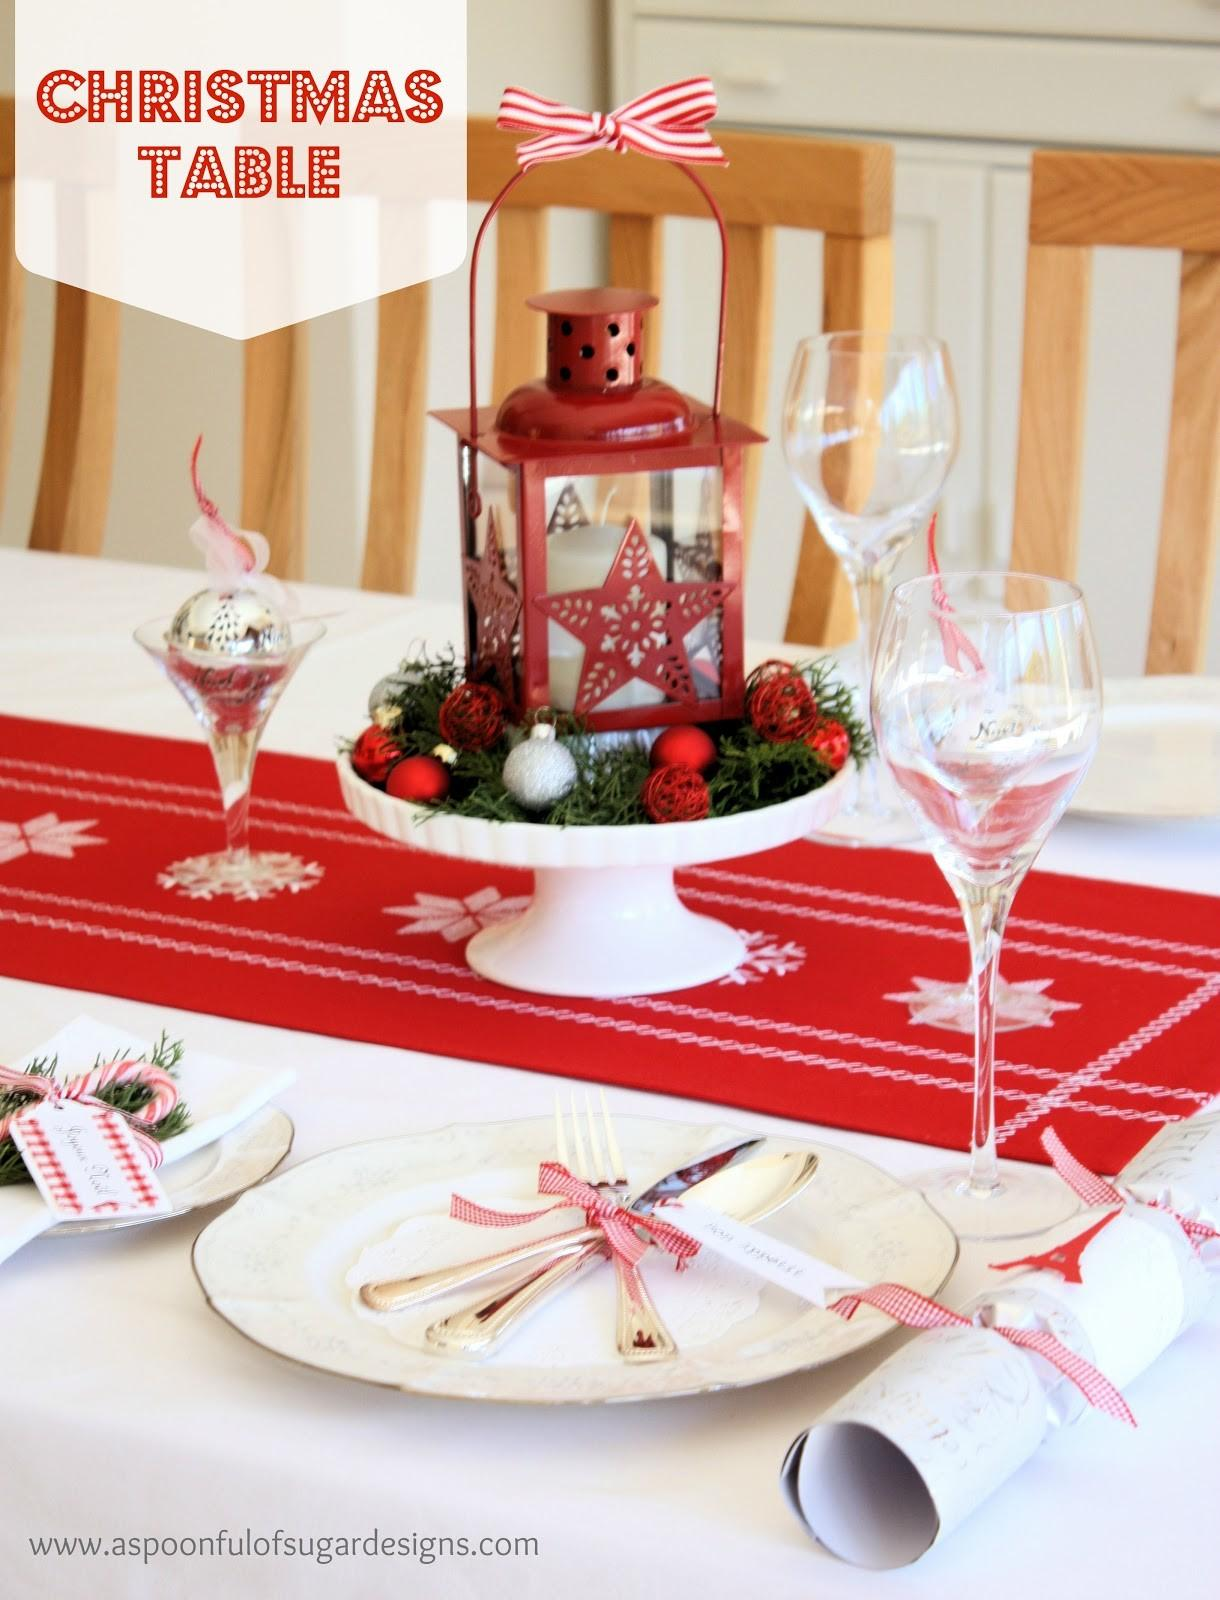 Our Christmas Table Spoonful Sugar